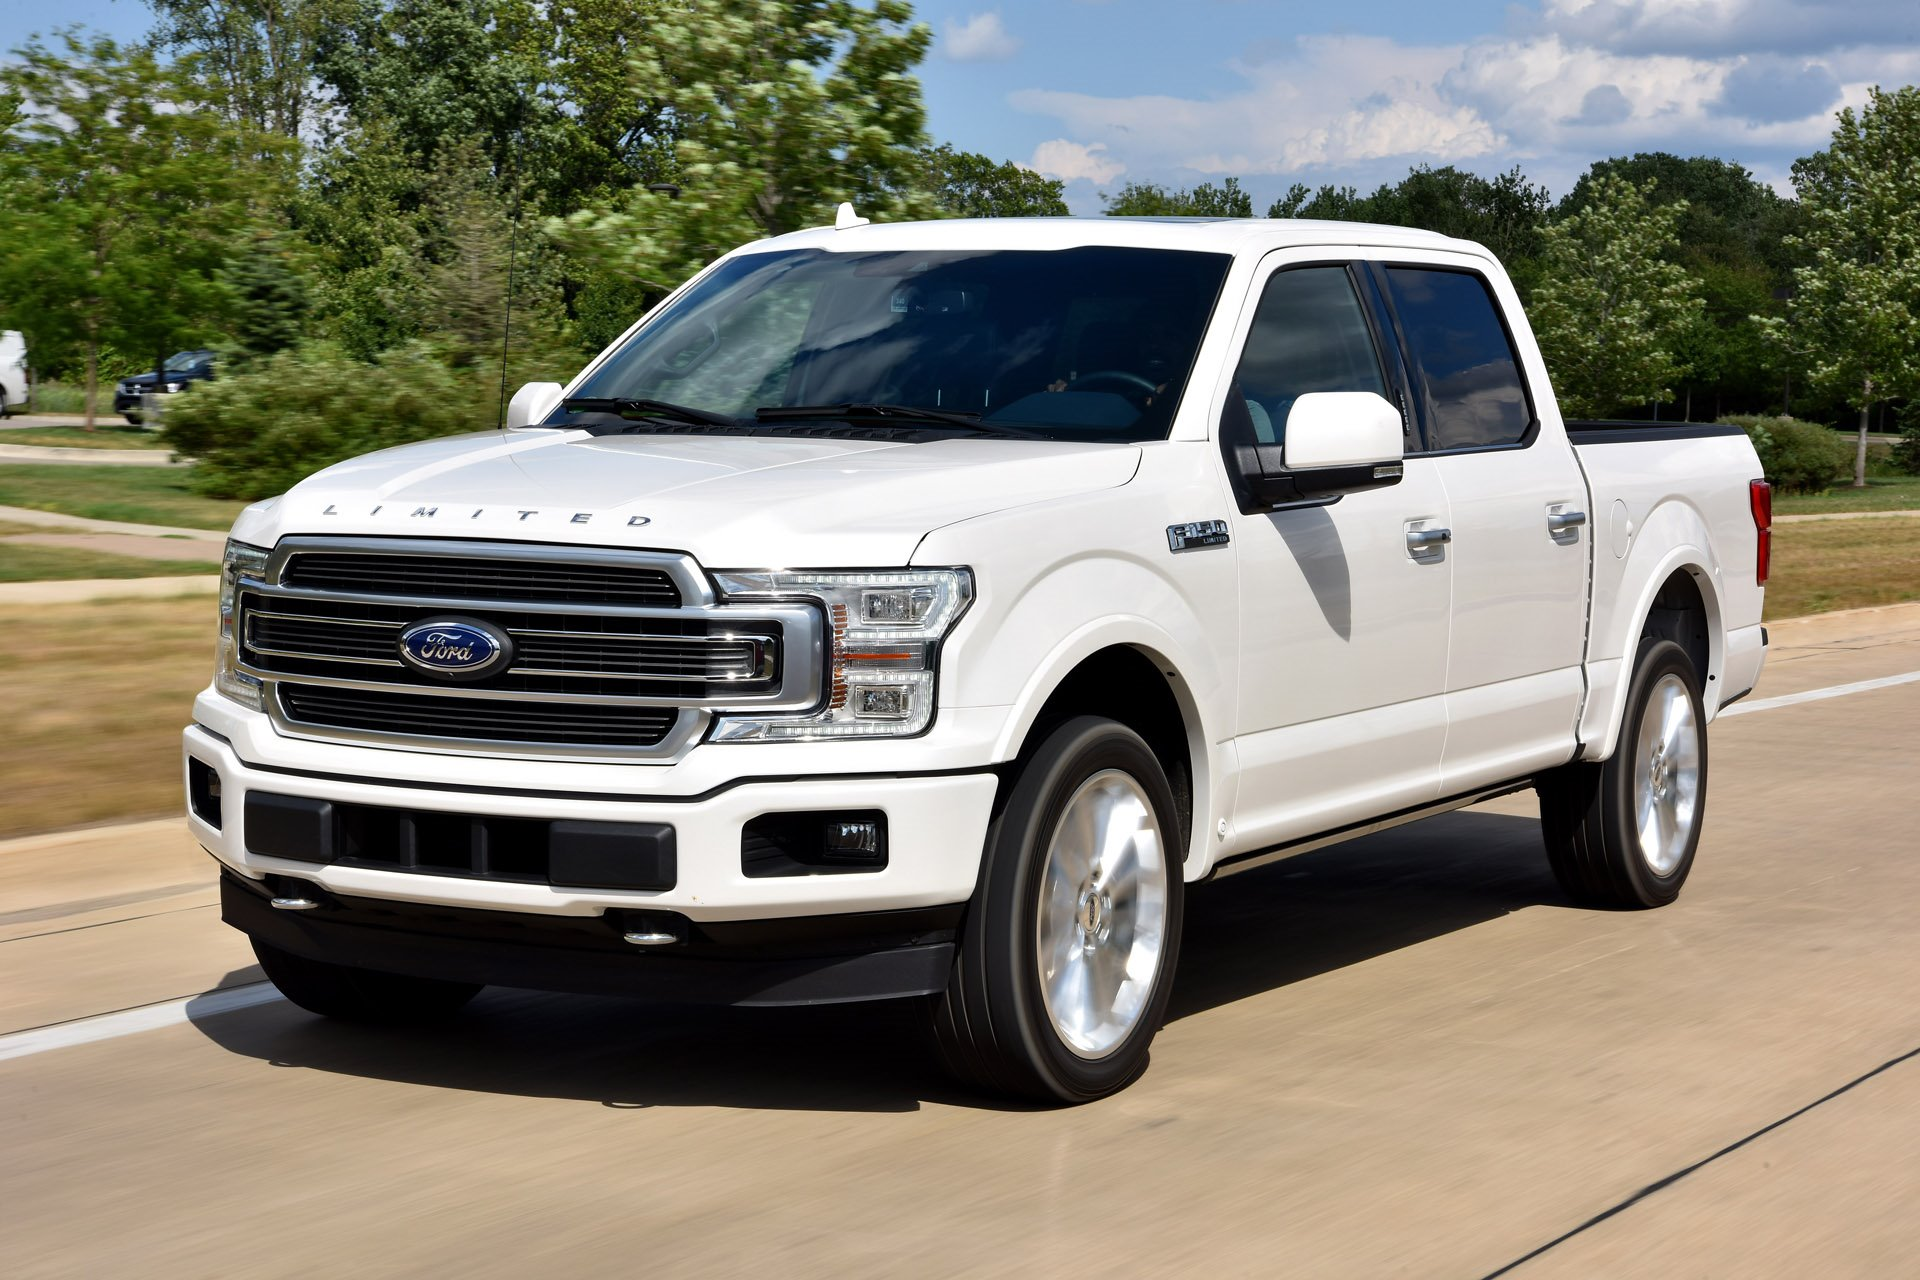 New 2019 Ford-F-150 XLT F-150 XLT for sale $40,495 at M and V Leasing in Brooklyn NY 11223 1